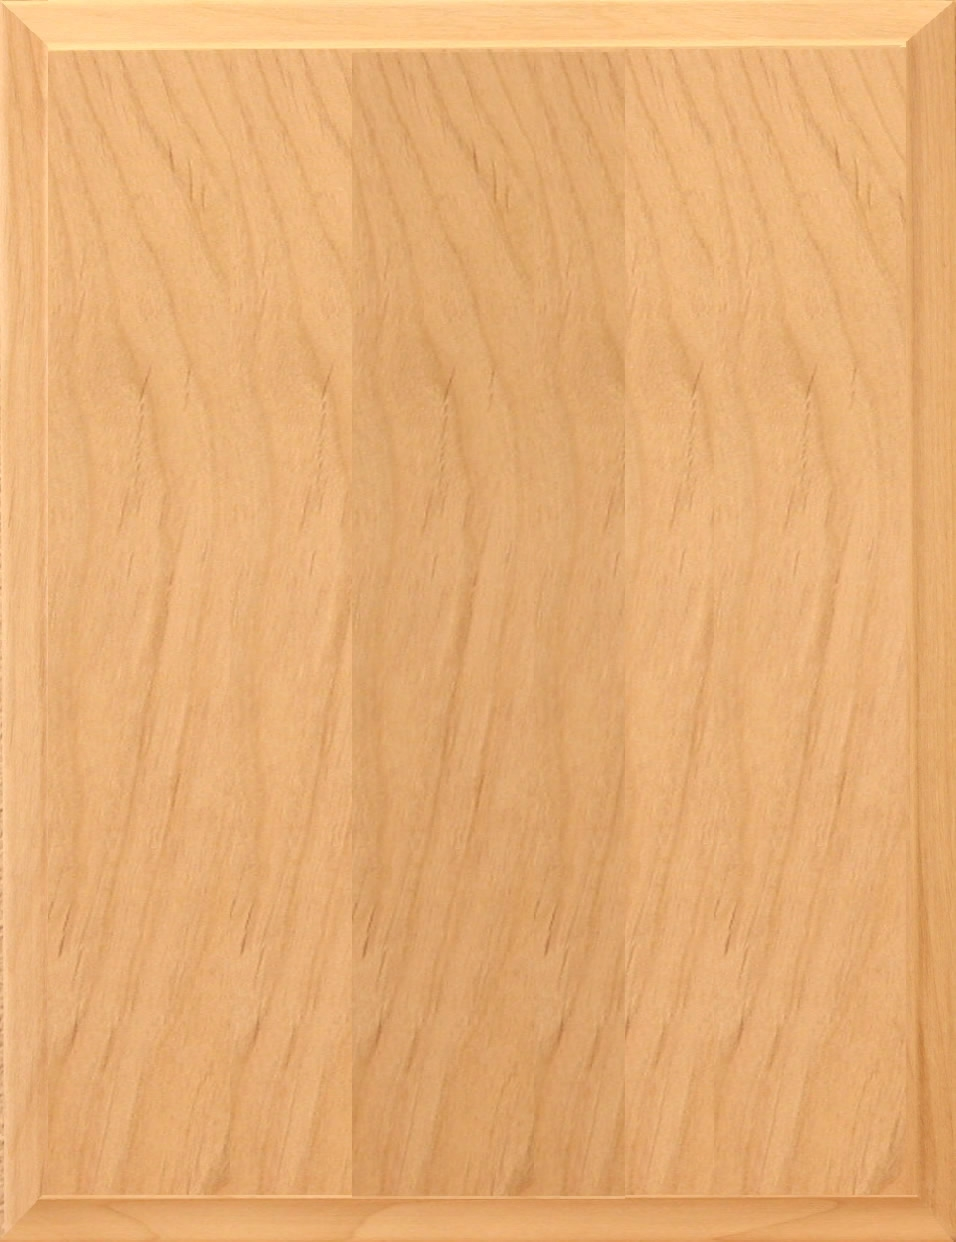 Larger Photo Email A Friend  sc 1 st  Barker Door & PHILADELPHIA Unfinished Cabinet Doors (SLAB)